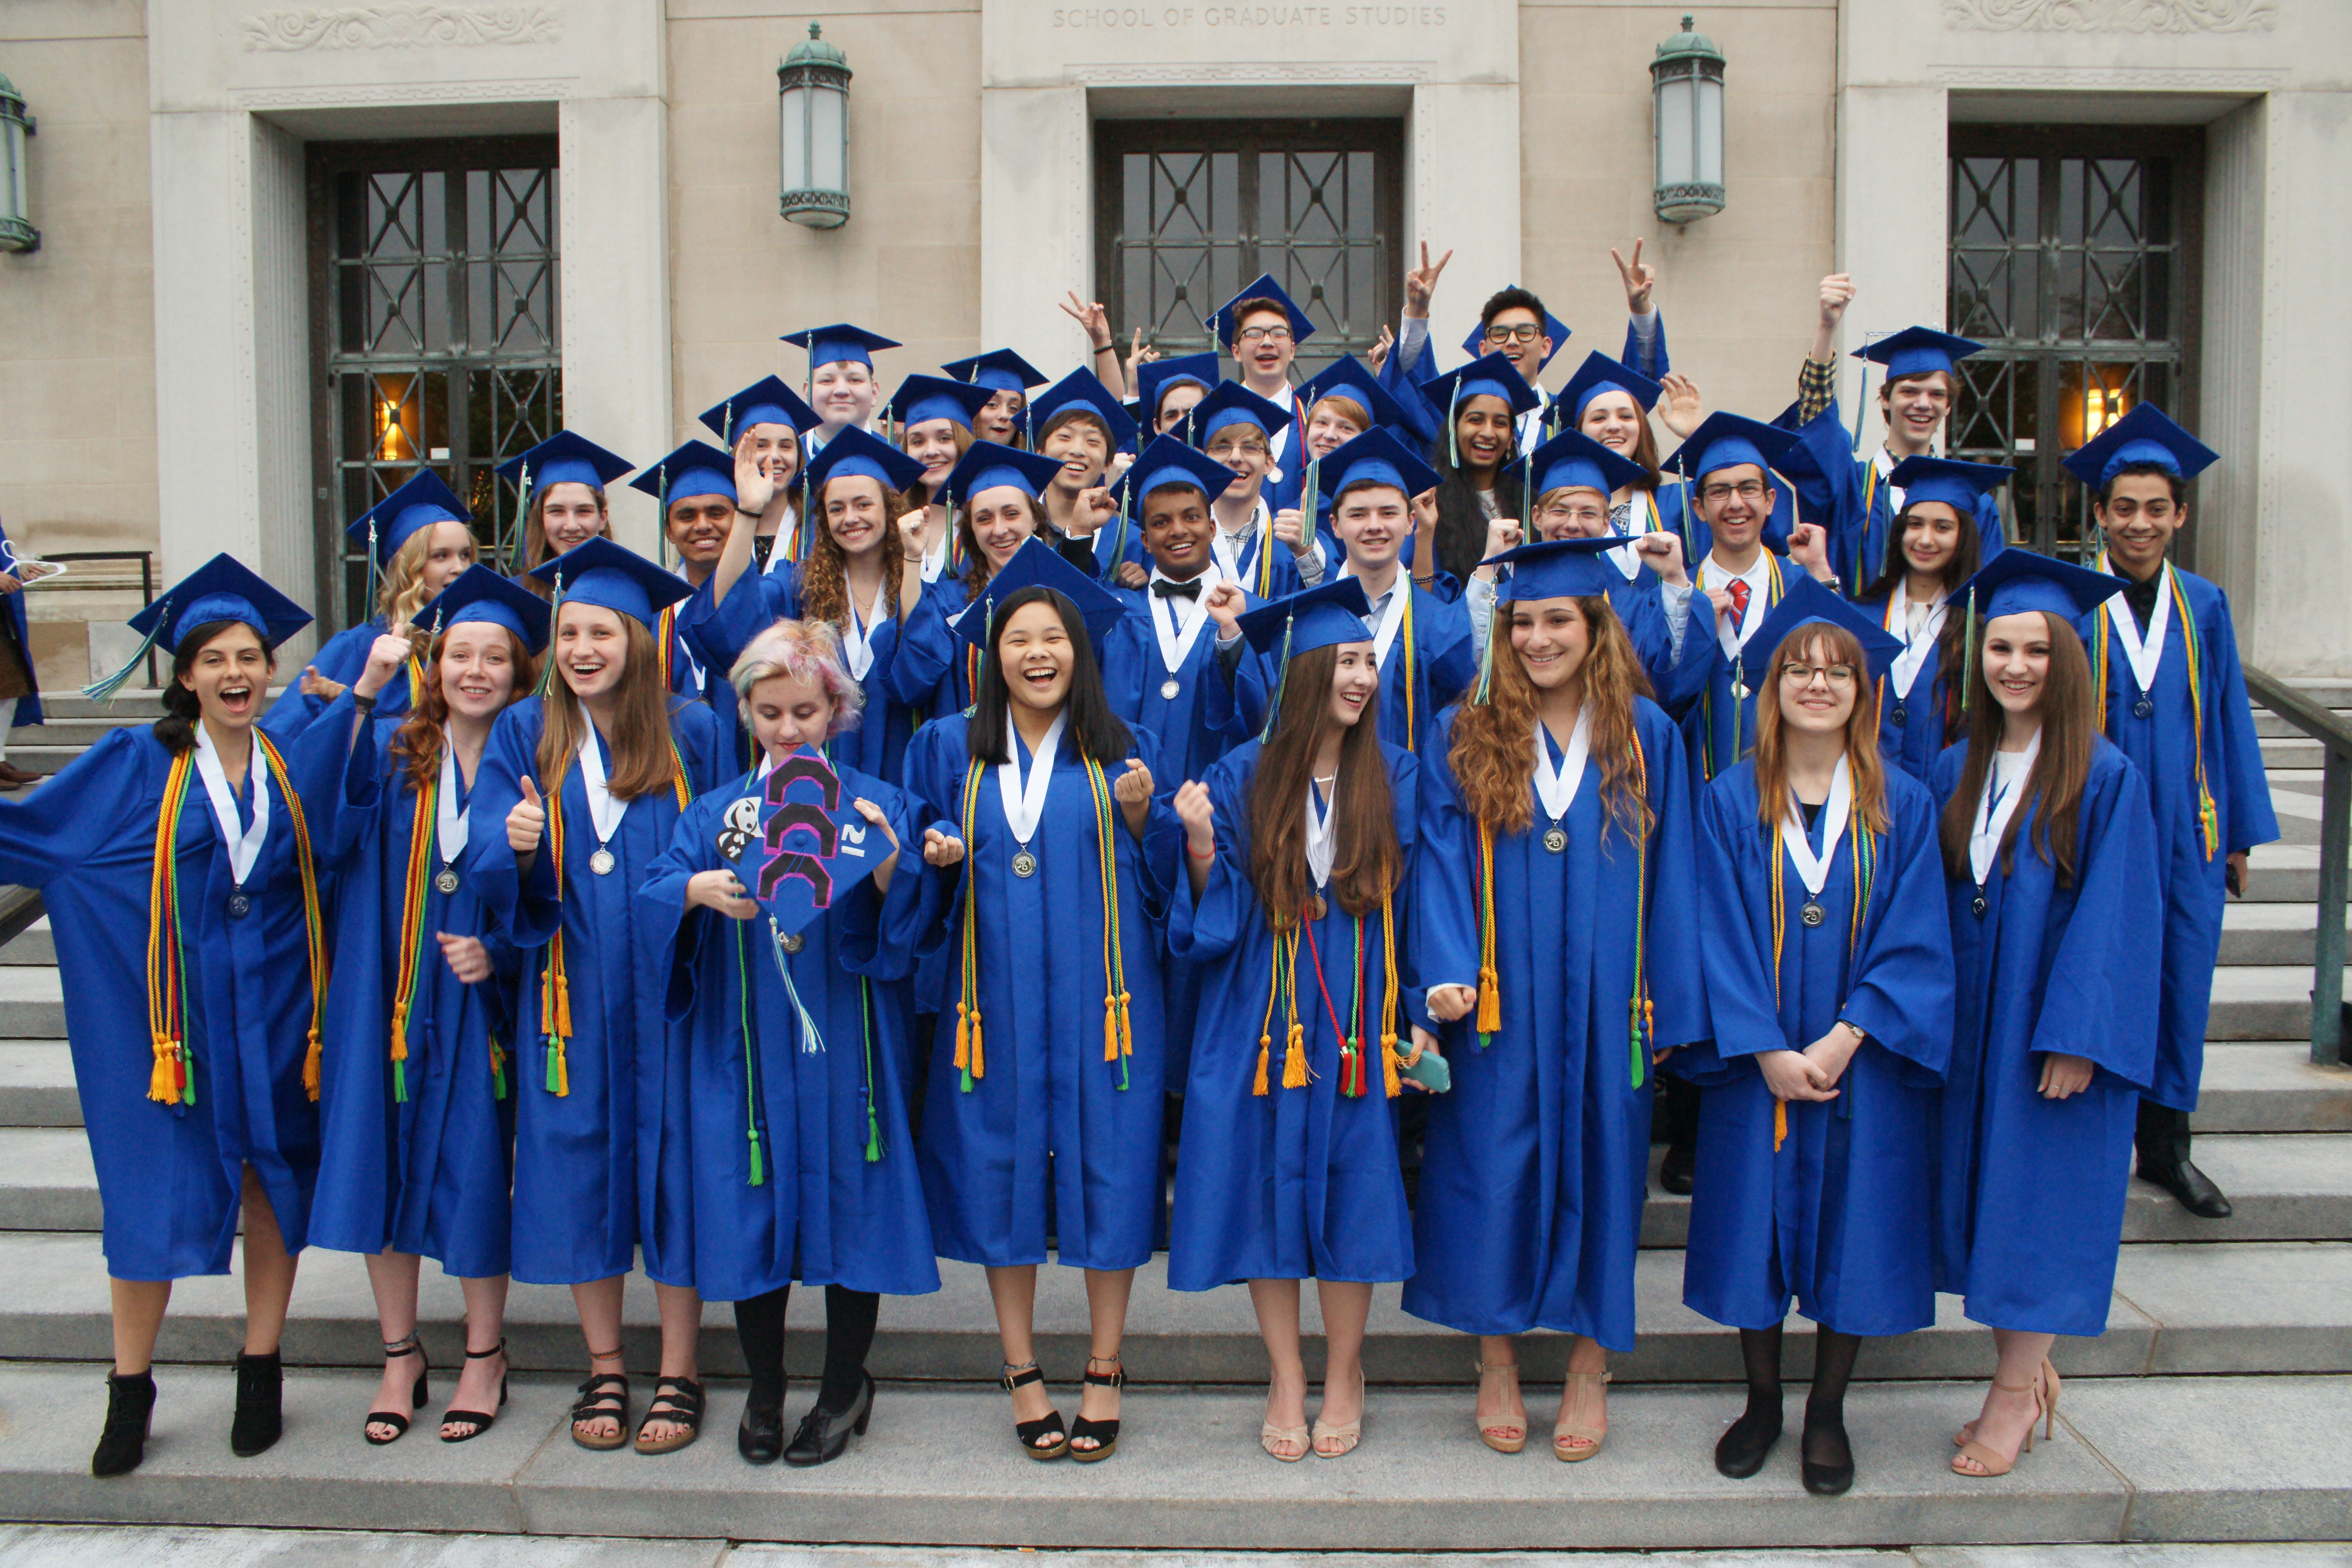 33 Washtenaw International High School graduates from Ann Arbor Public Schools wearing caps and gowns.